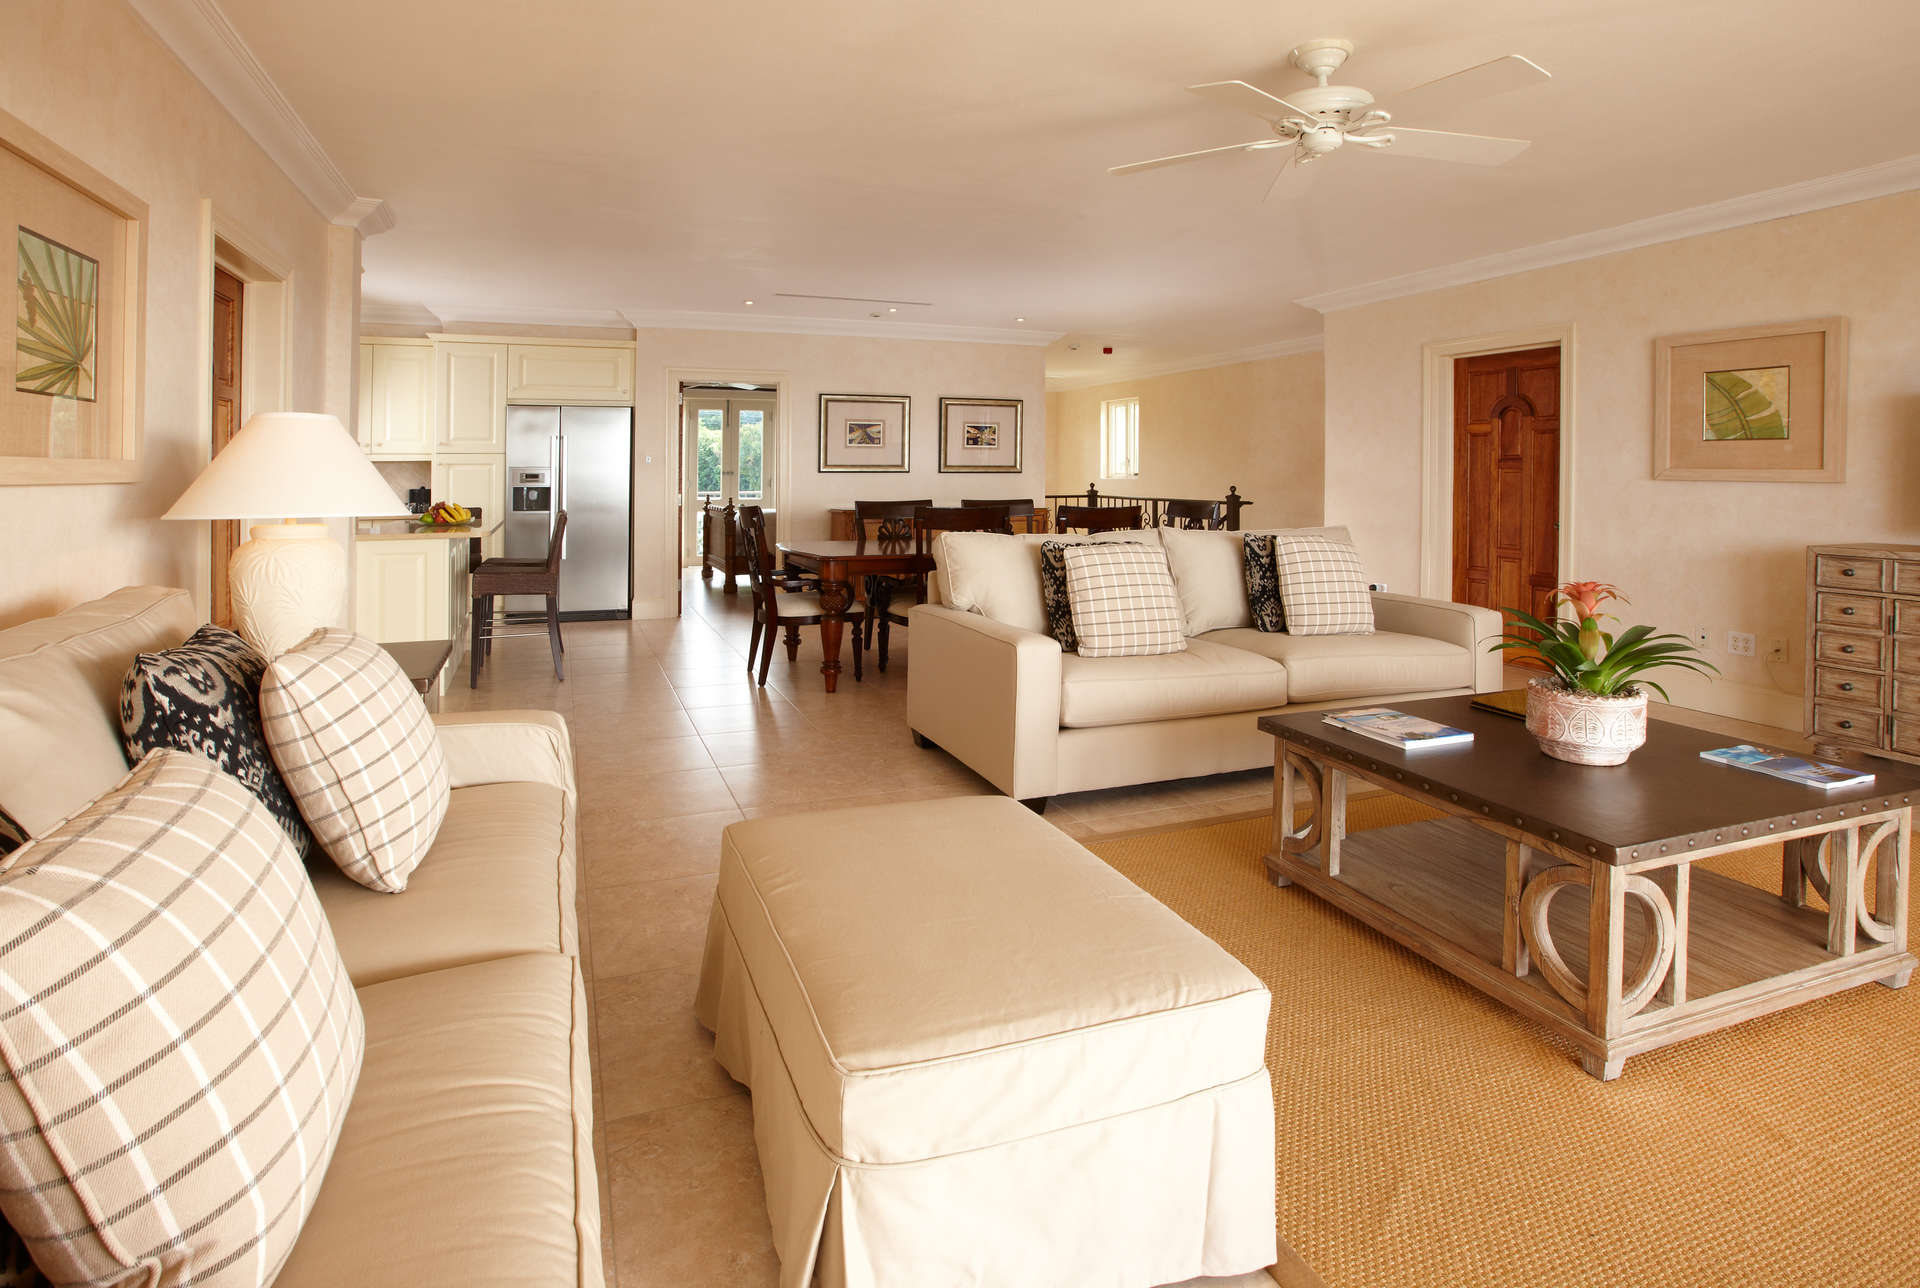 - The Cove Penthouse - Image 1/12